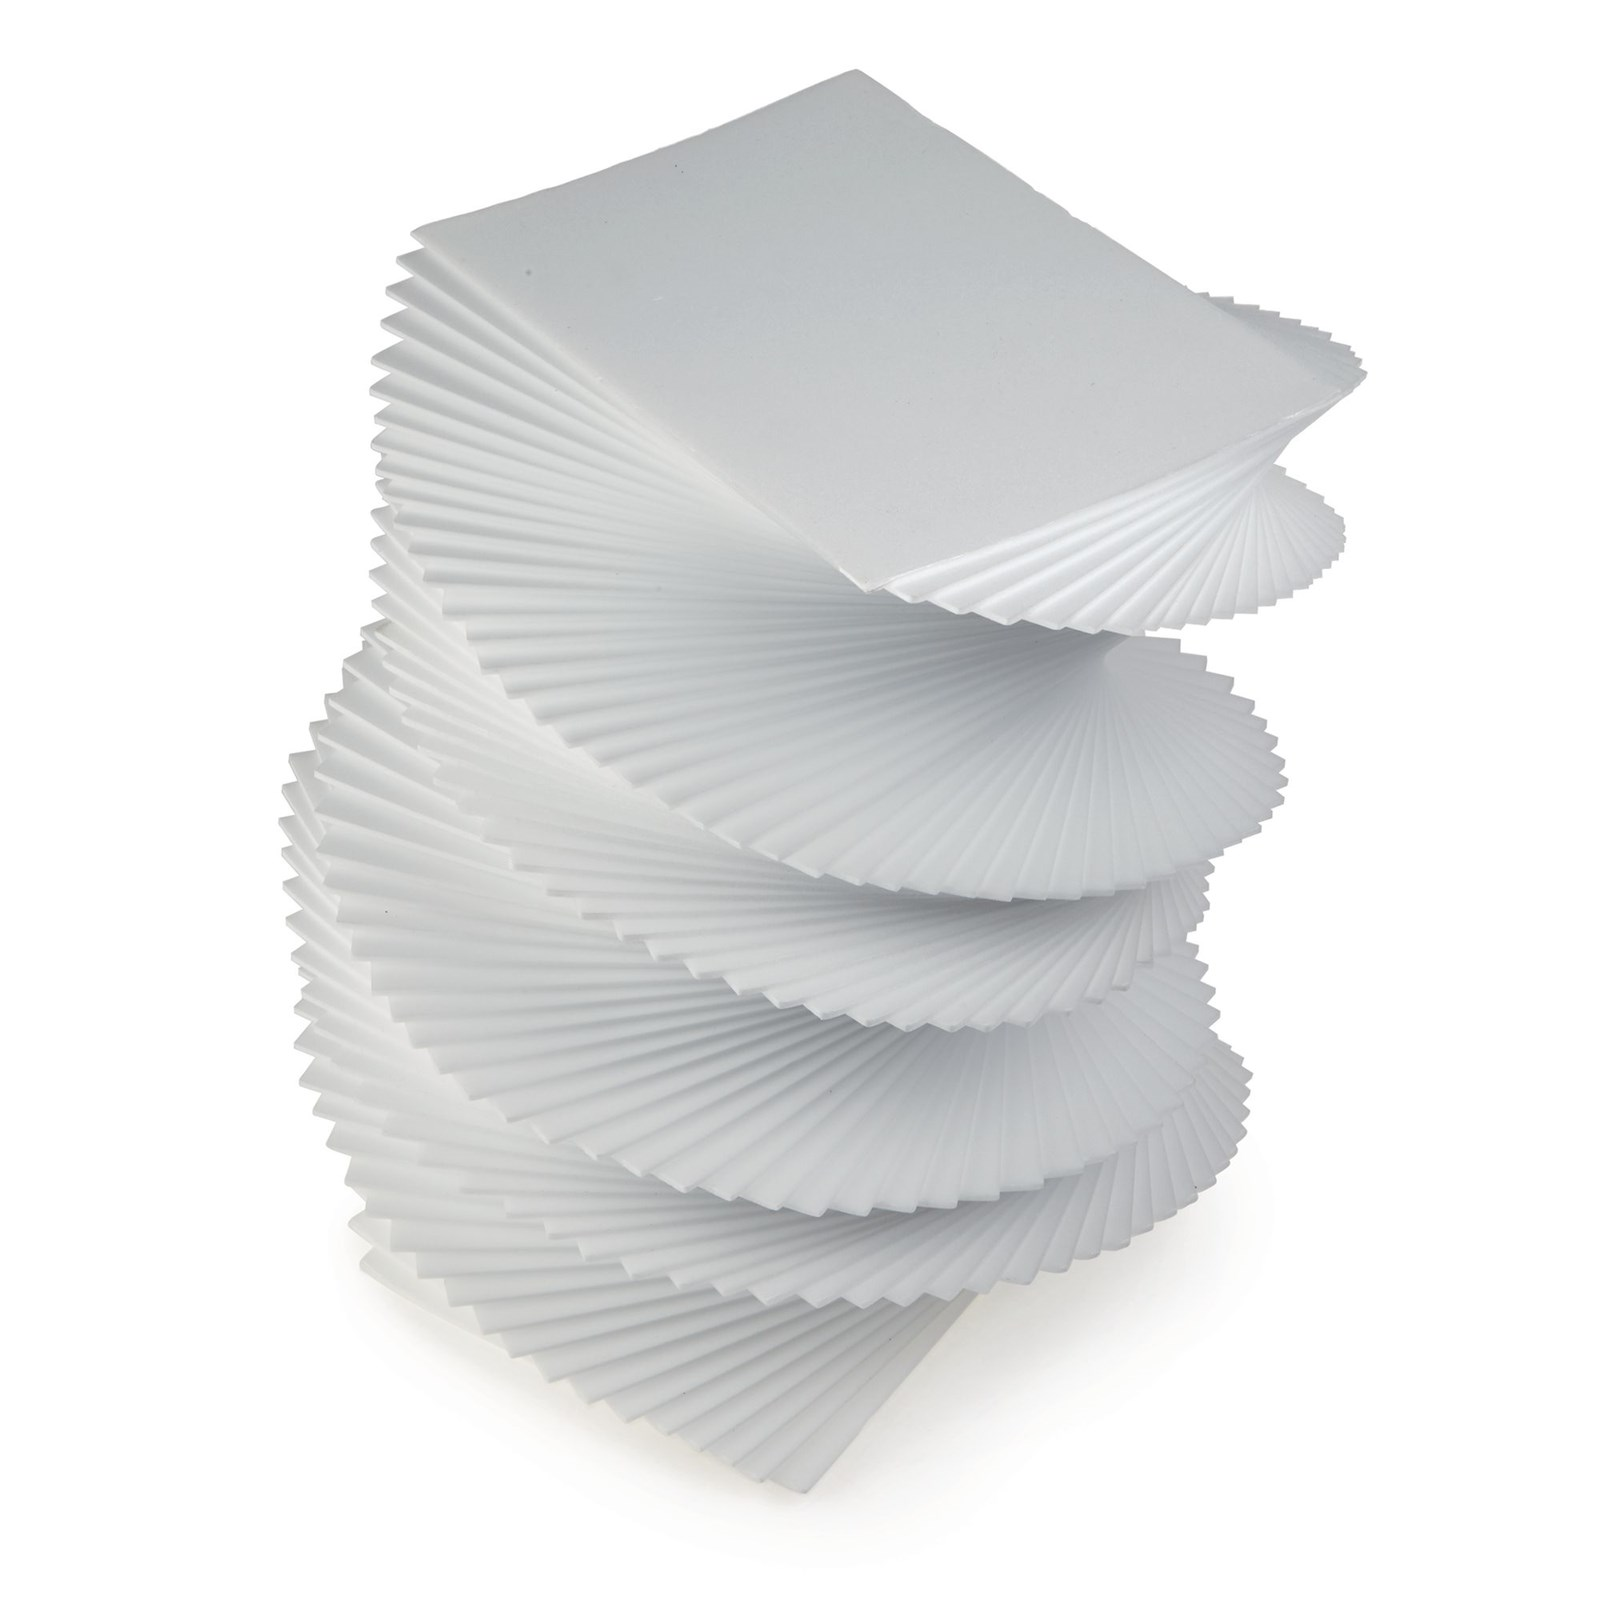 Easy Print Sheets A4 Pack of 100